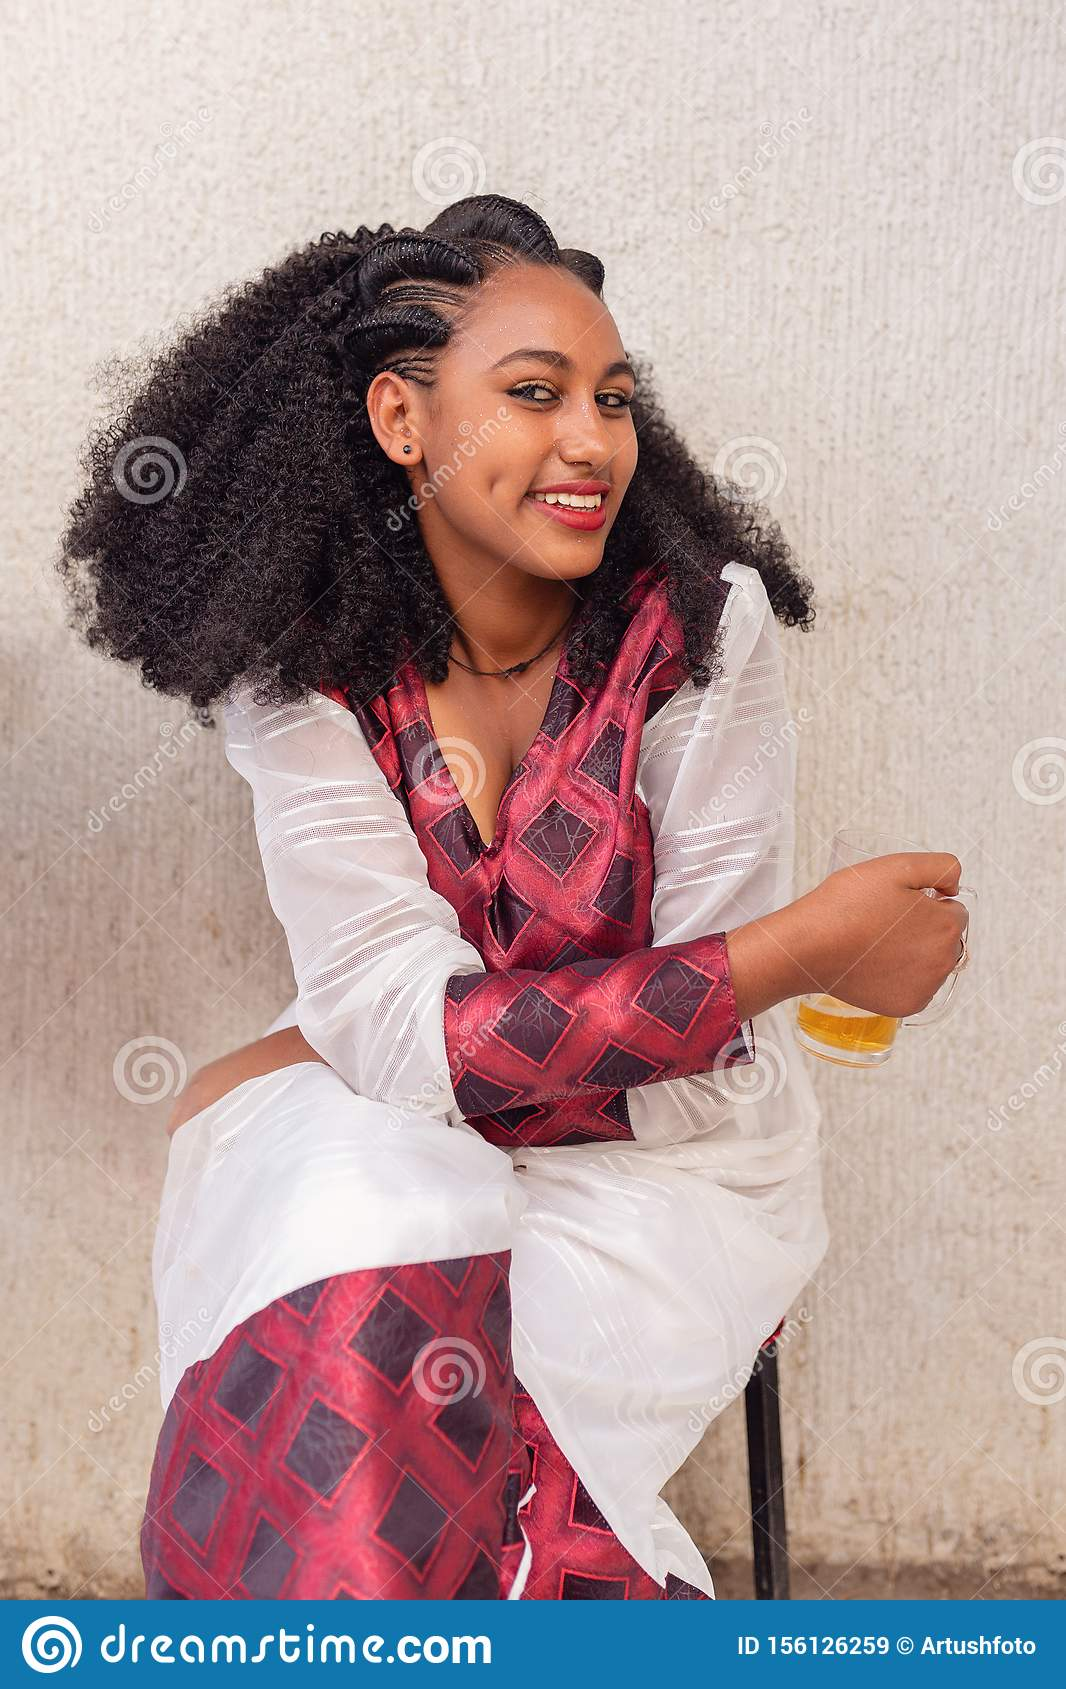 Beauty Woman With Traditional Hairstyle Ethiopia Editorial Stock Image Image Of Human Beautiful 156126259